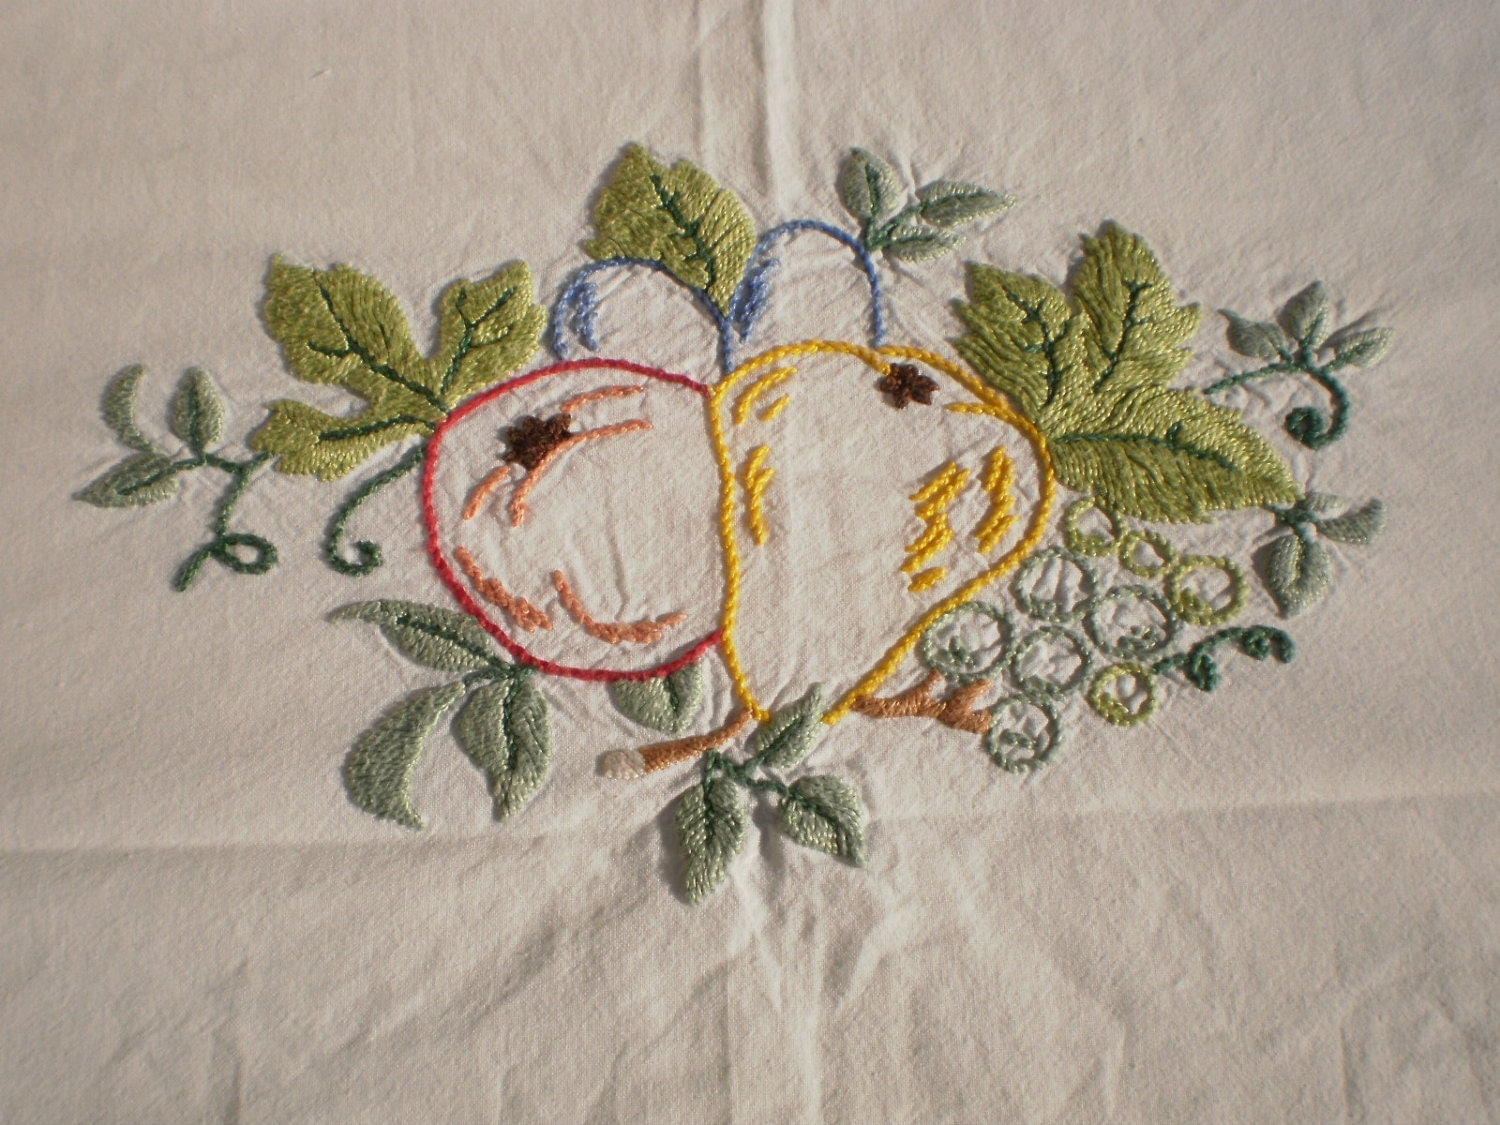 Table cover embroidery designs -  Zoom